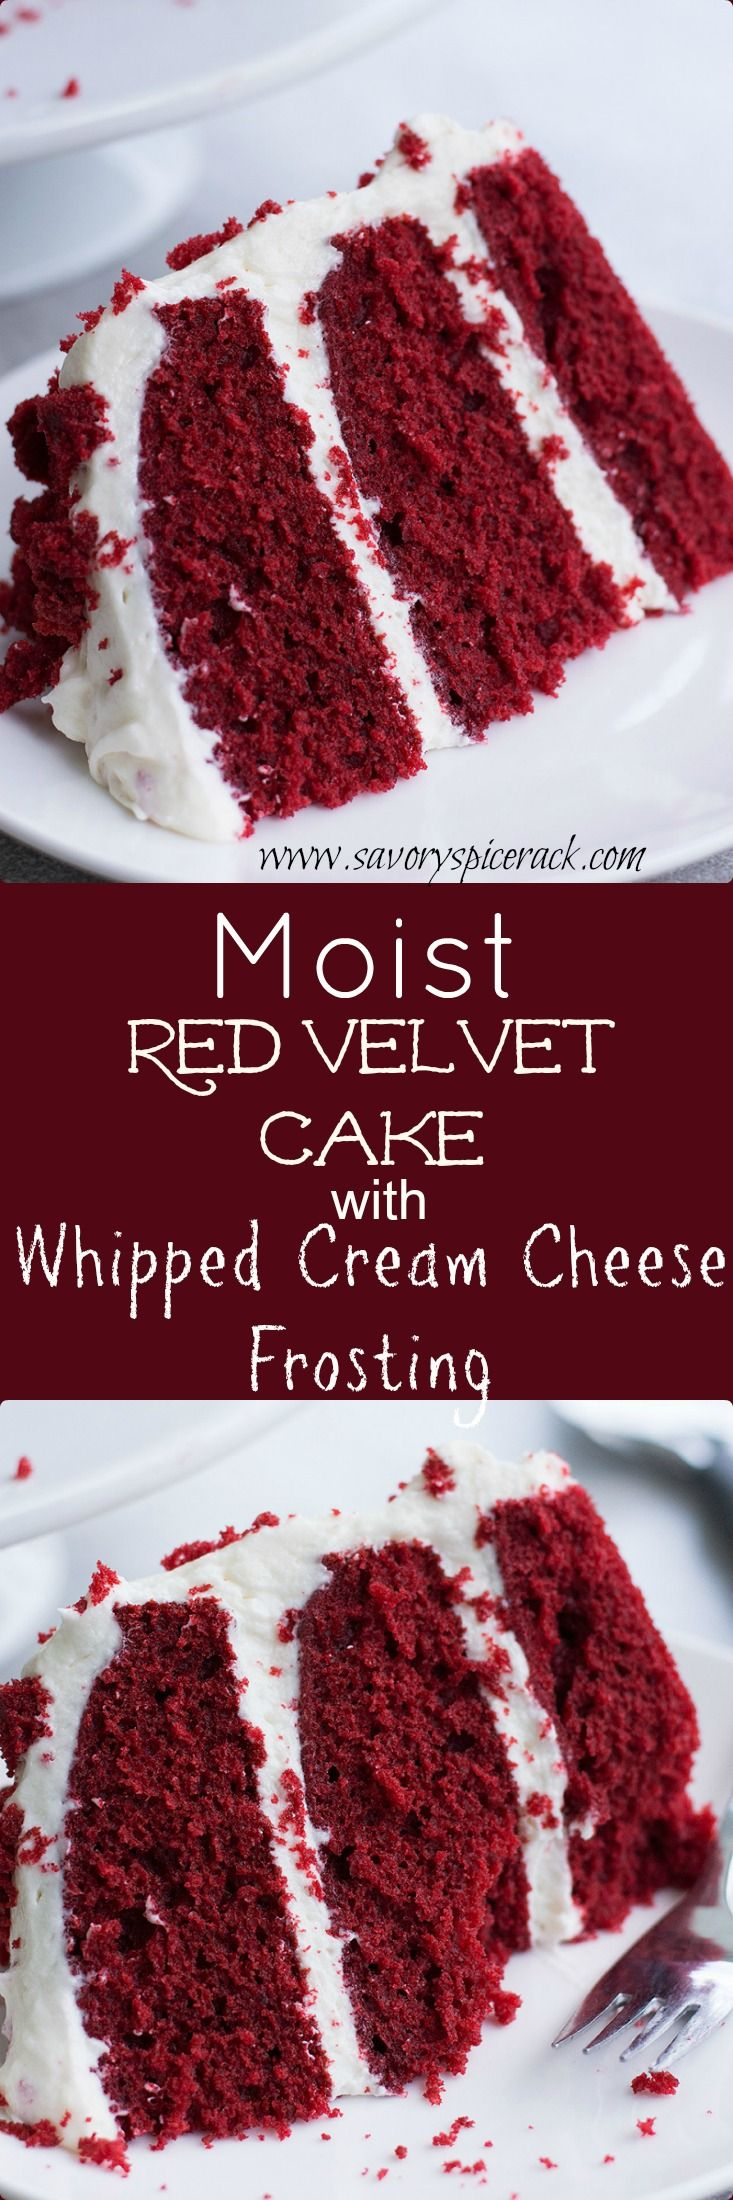 This Red Velvet Cake Is Super Moist And It Has Such A Light And Fluffy Homemade Cream Cheese Frosting Desserts Homemade Cakes Whipped Cream Cheese Frosting